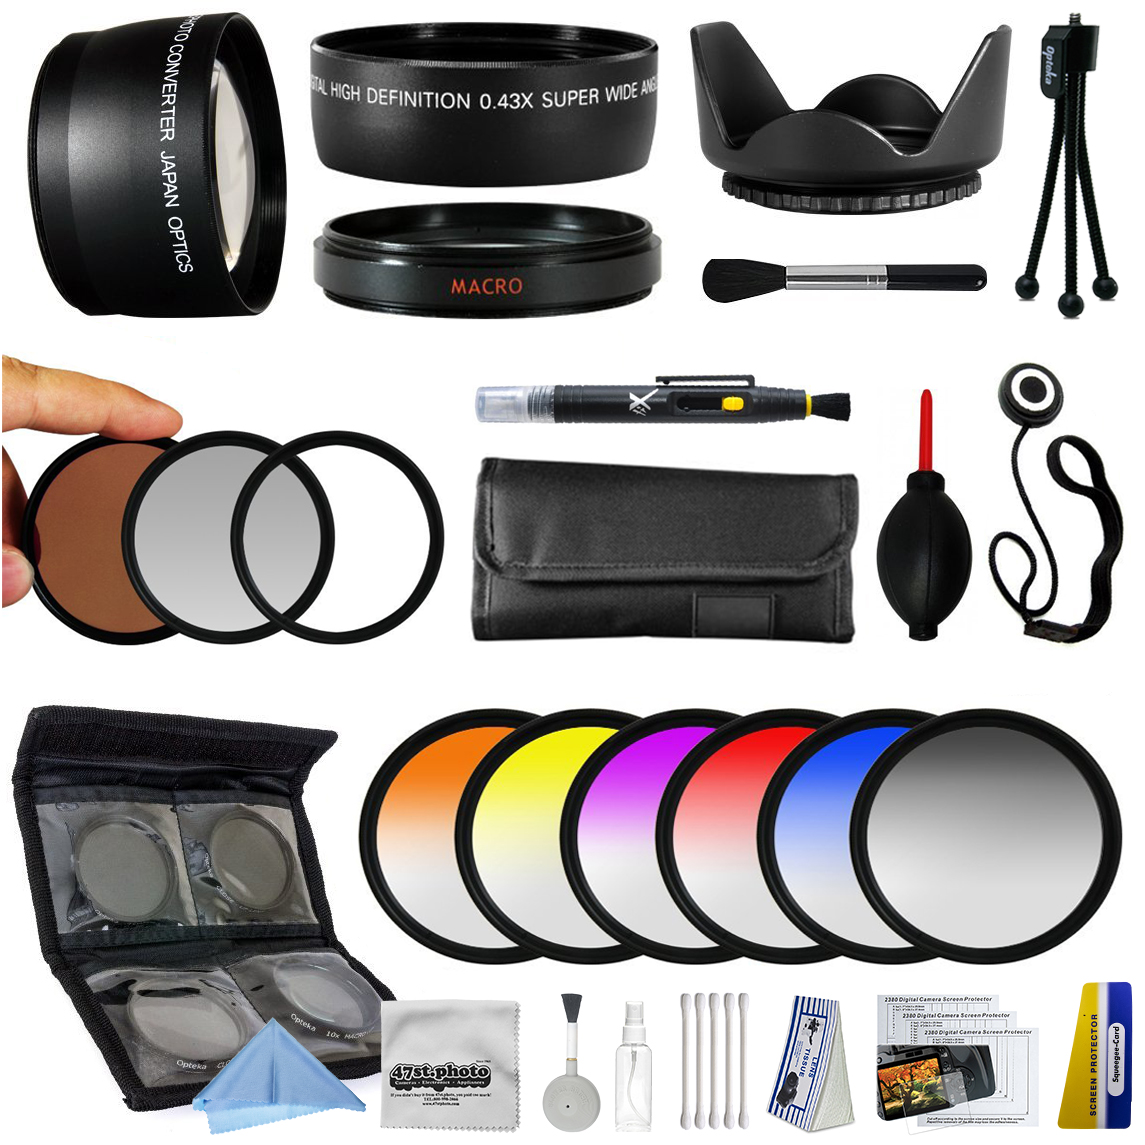 25 Piece Advanced Lens Package For Nikon 1 AW1 J1 J2 V1 V2 S1 J3 Mirrorless Digital Cameras Includes 0.43X + 2.2x Lens + 3 Piece Filters + 6 Piece Colored Graduated Filter Set